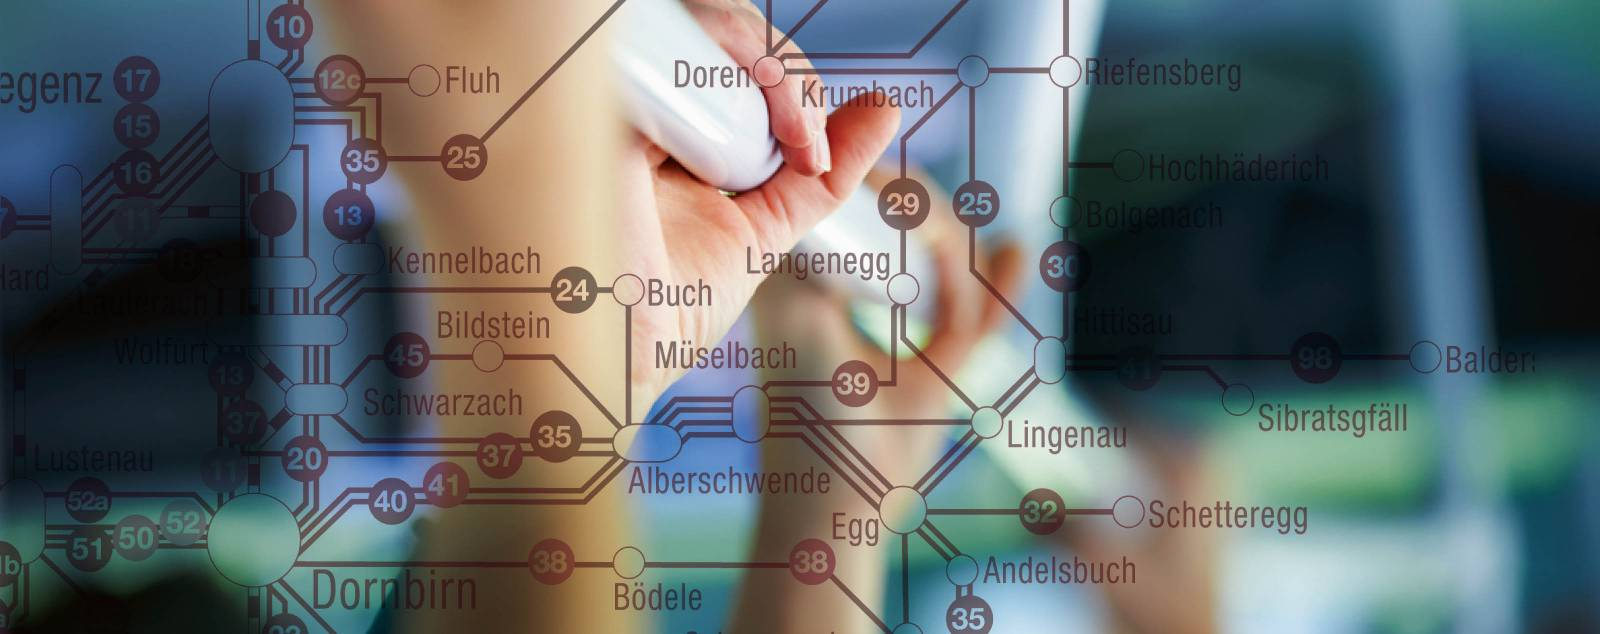 MATRIK | Public Transport Innovation Anschlusssicherung